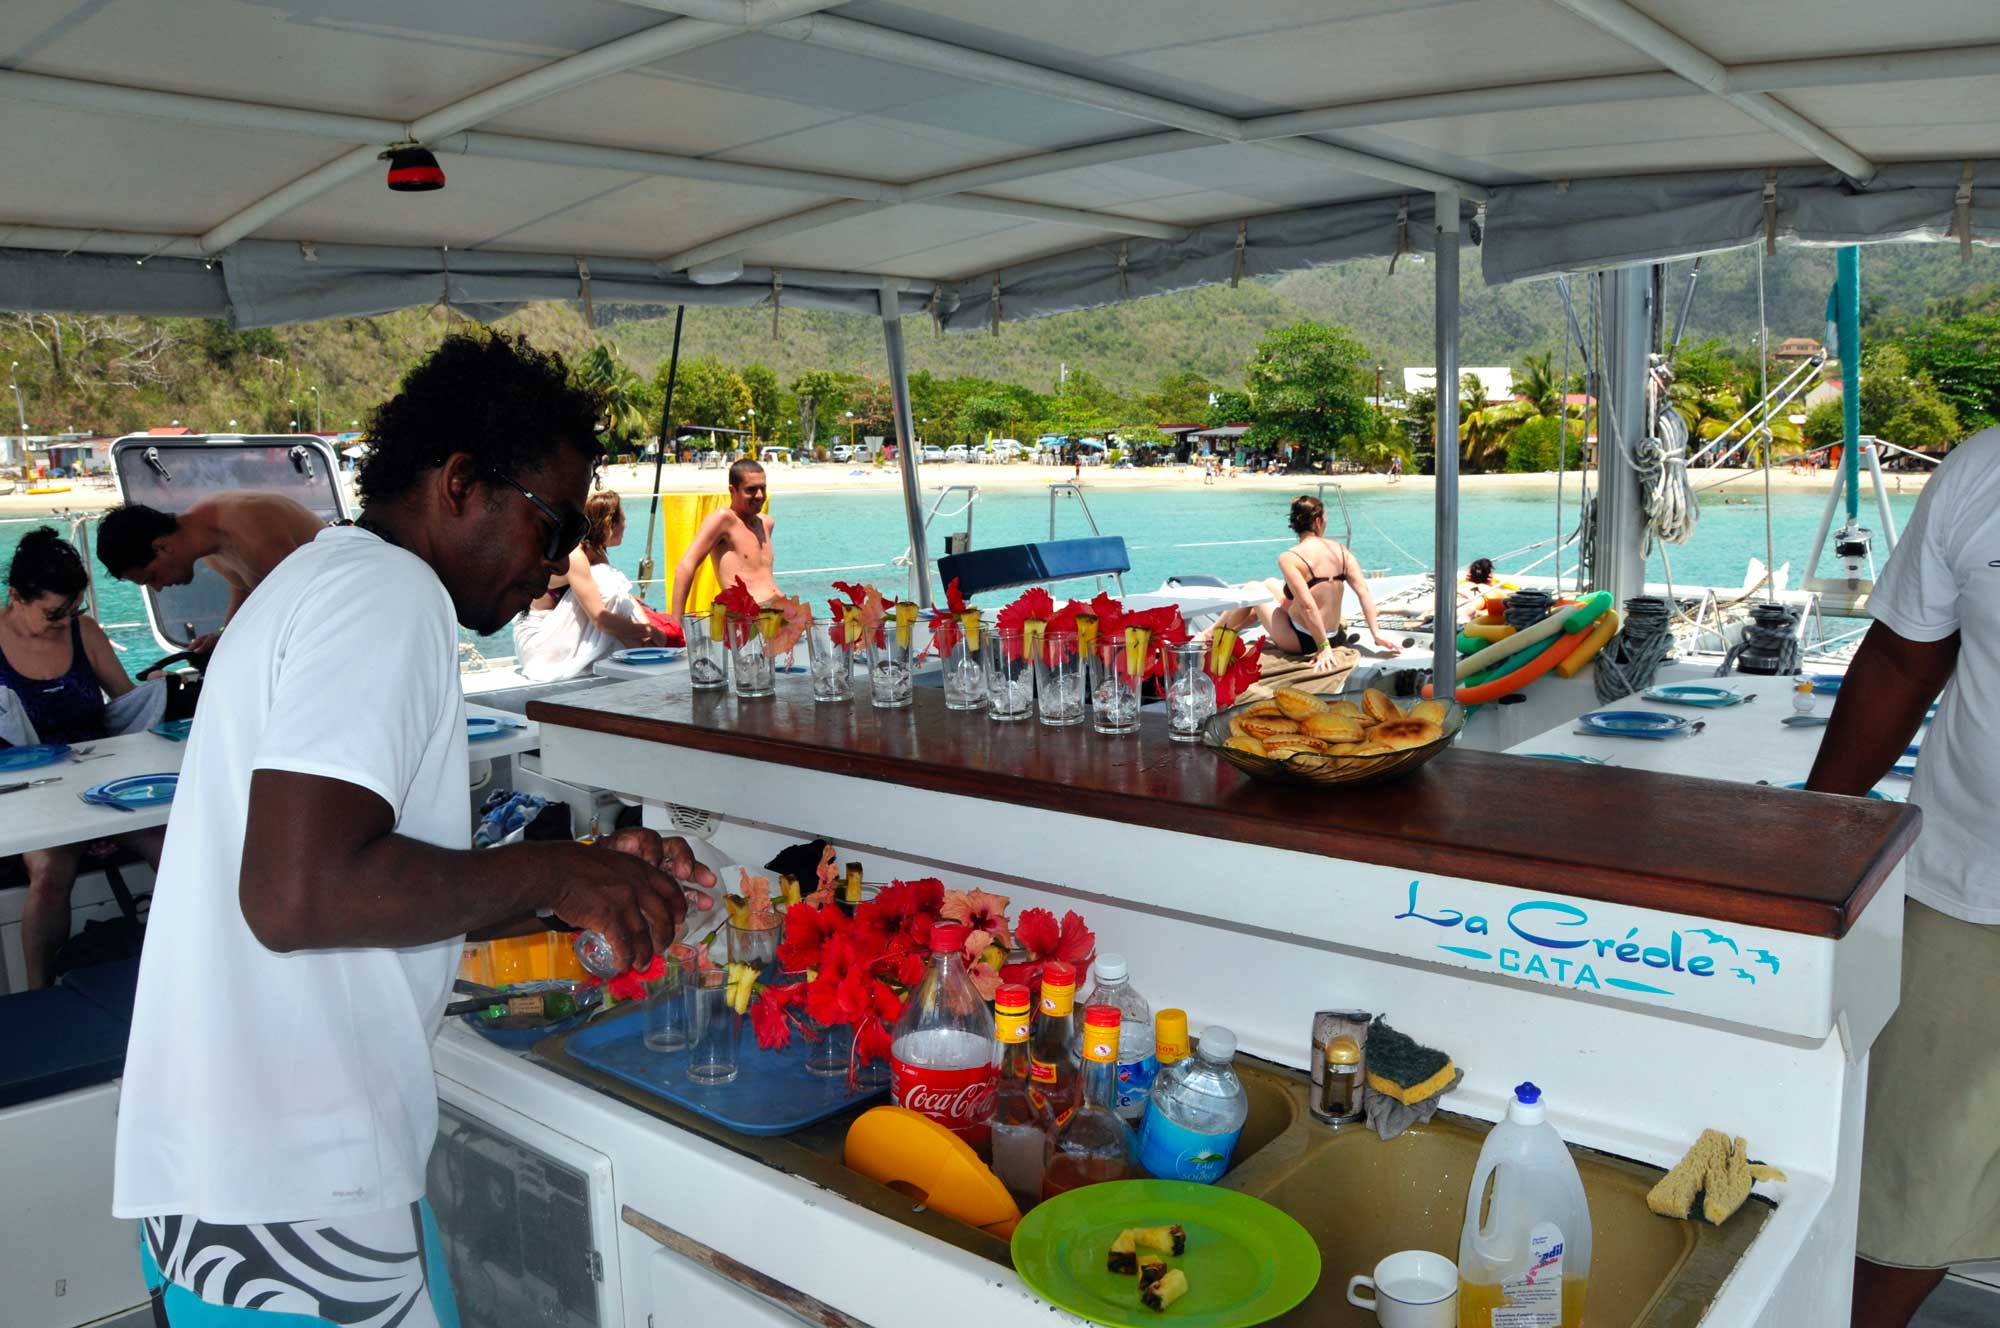 the Creole cata - rent catamaran Martinique cruising outing